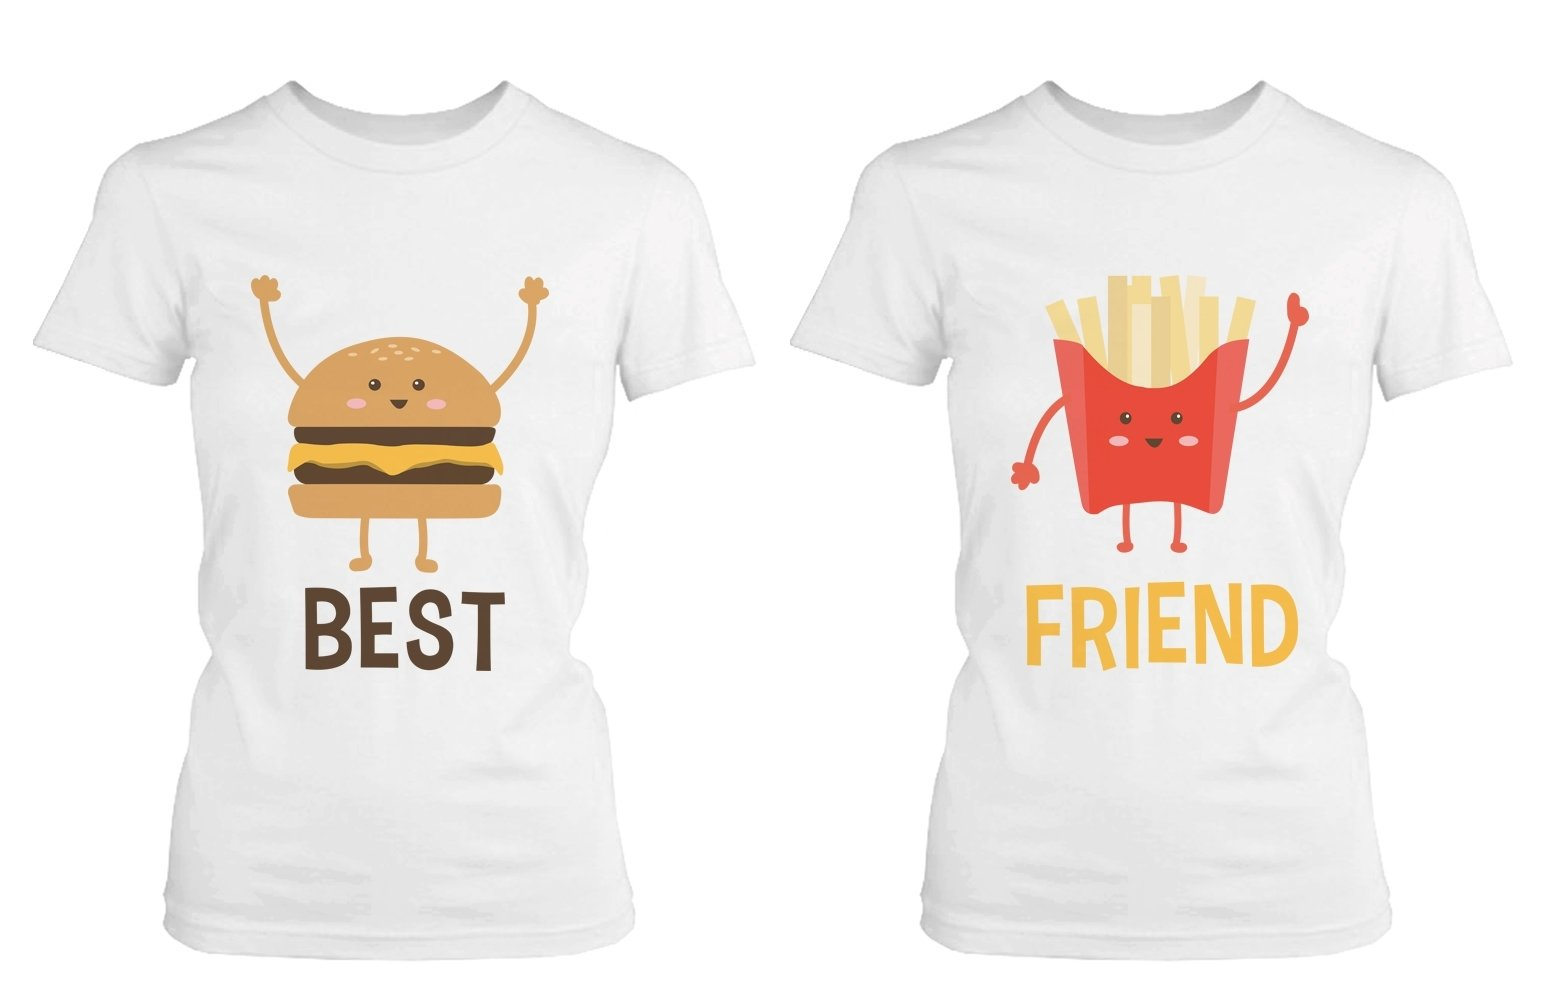 bestfriend tshirt ideas - google search | best friend<3 | pinterest